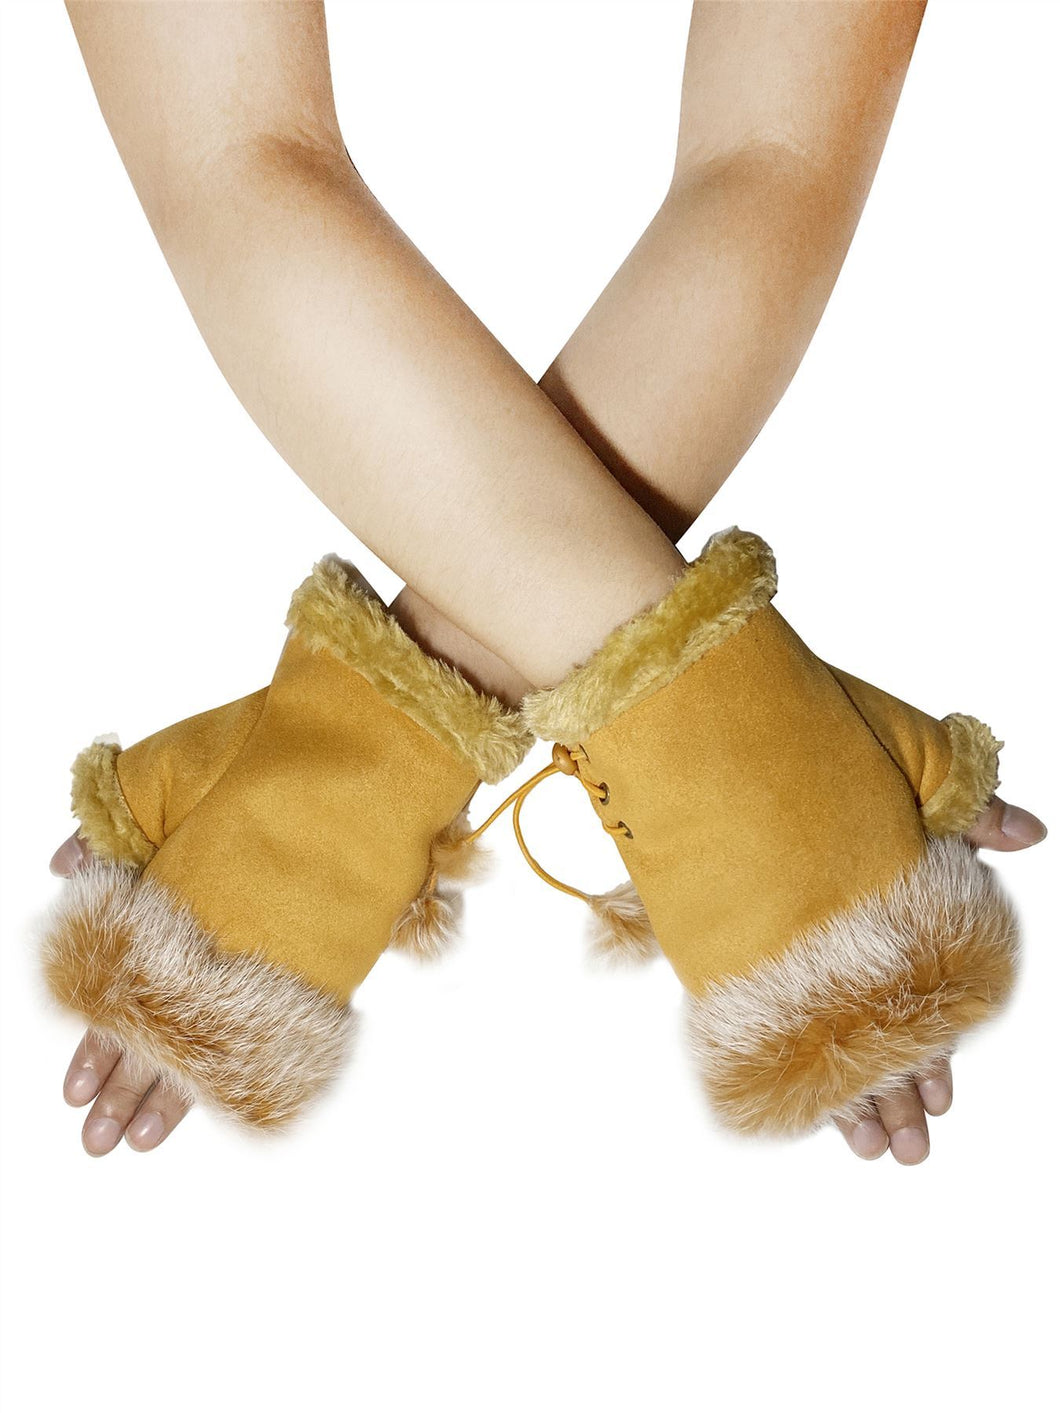 Real Fur Fingerless Mittens - Mustard